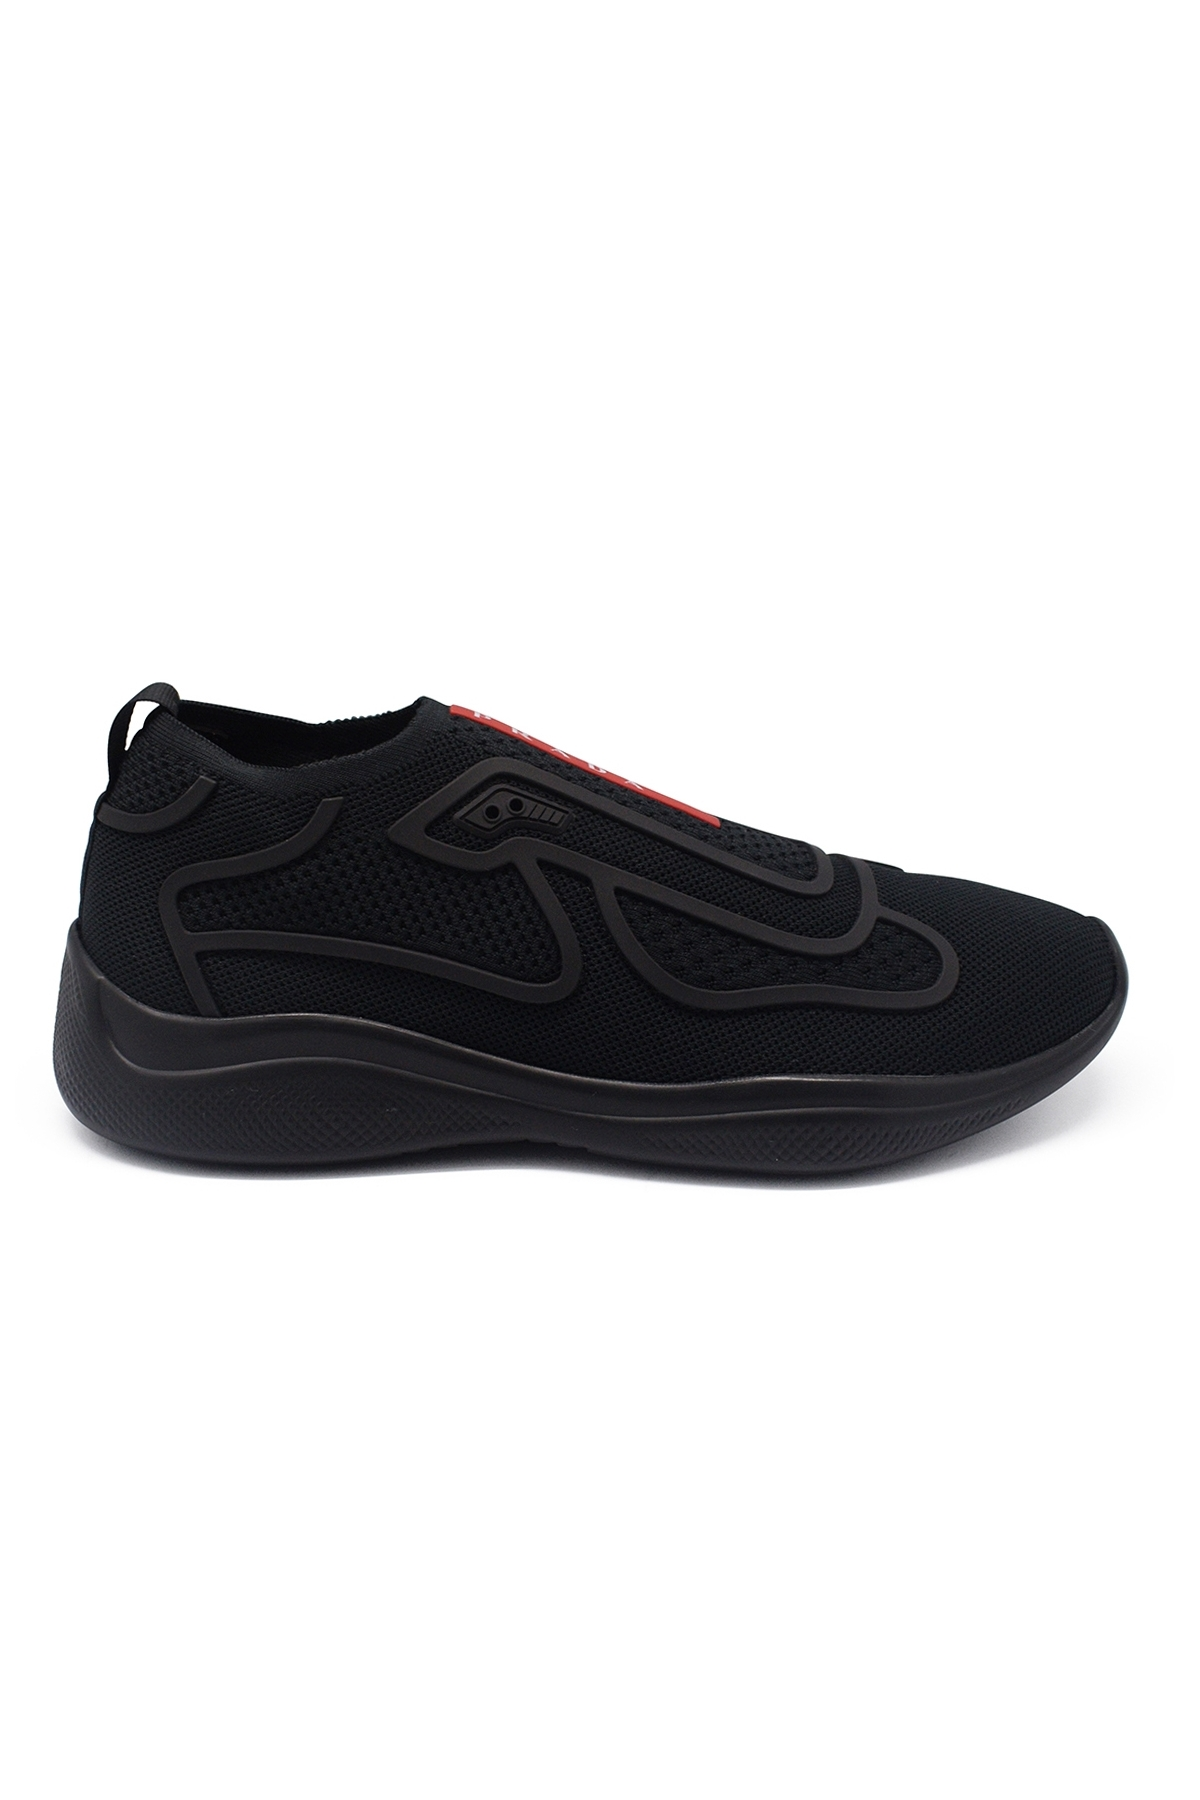 Prada slip-on black sneakers in stretched jersey with red and white Prada logo on the front